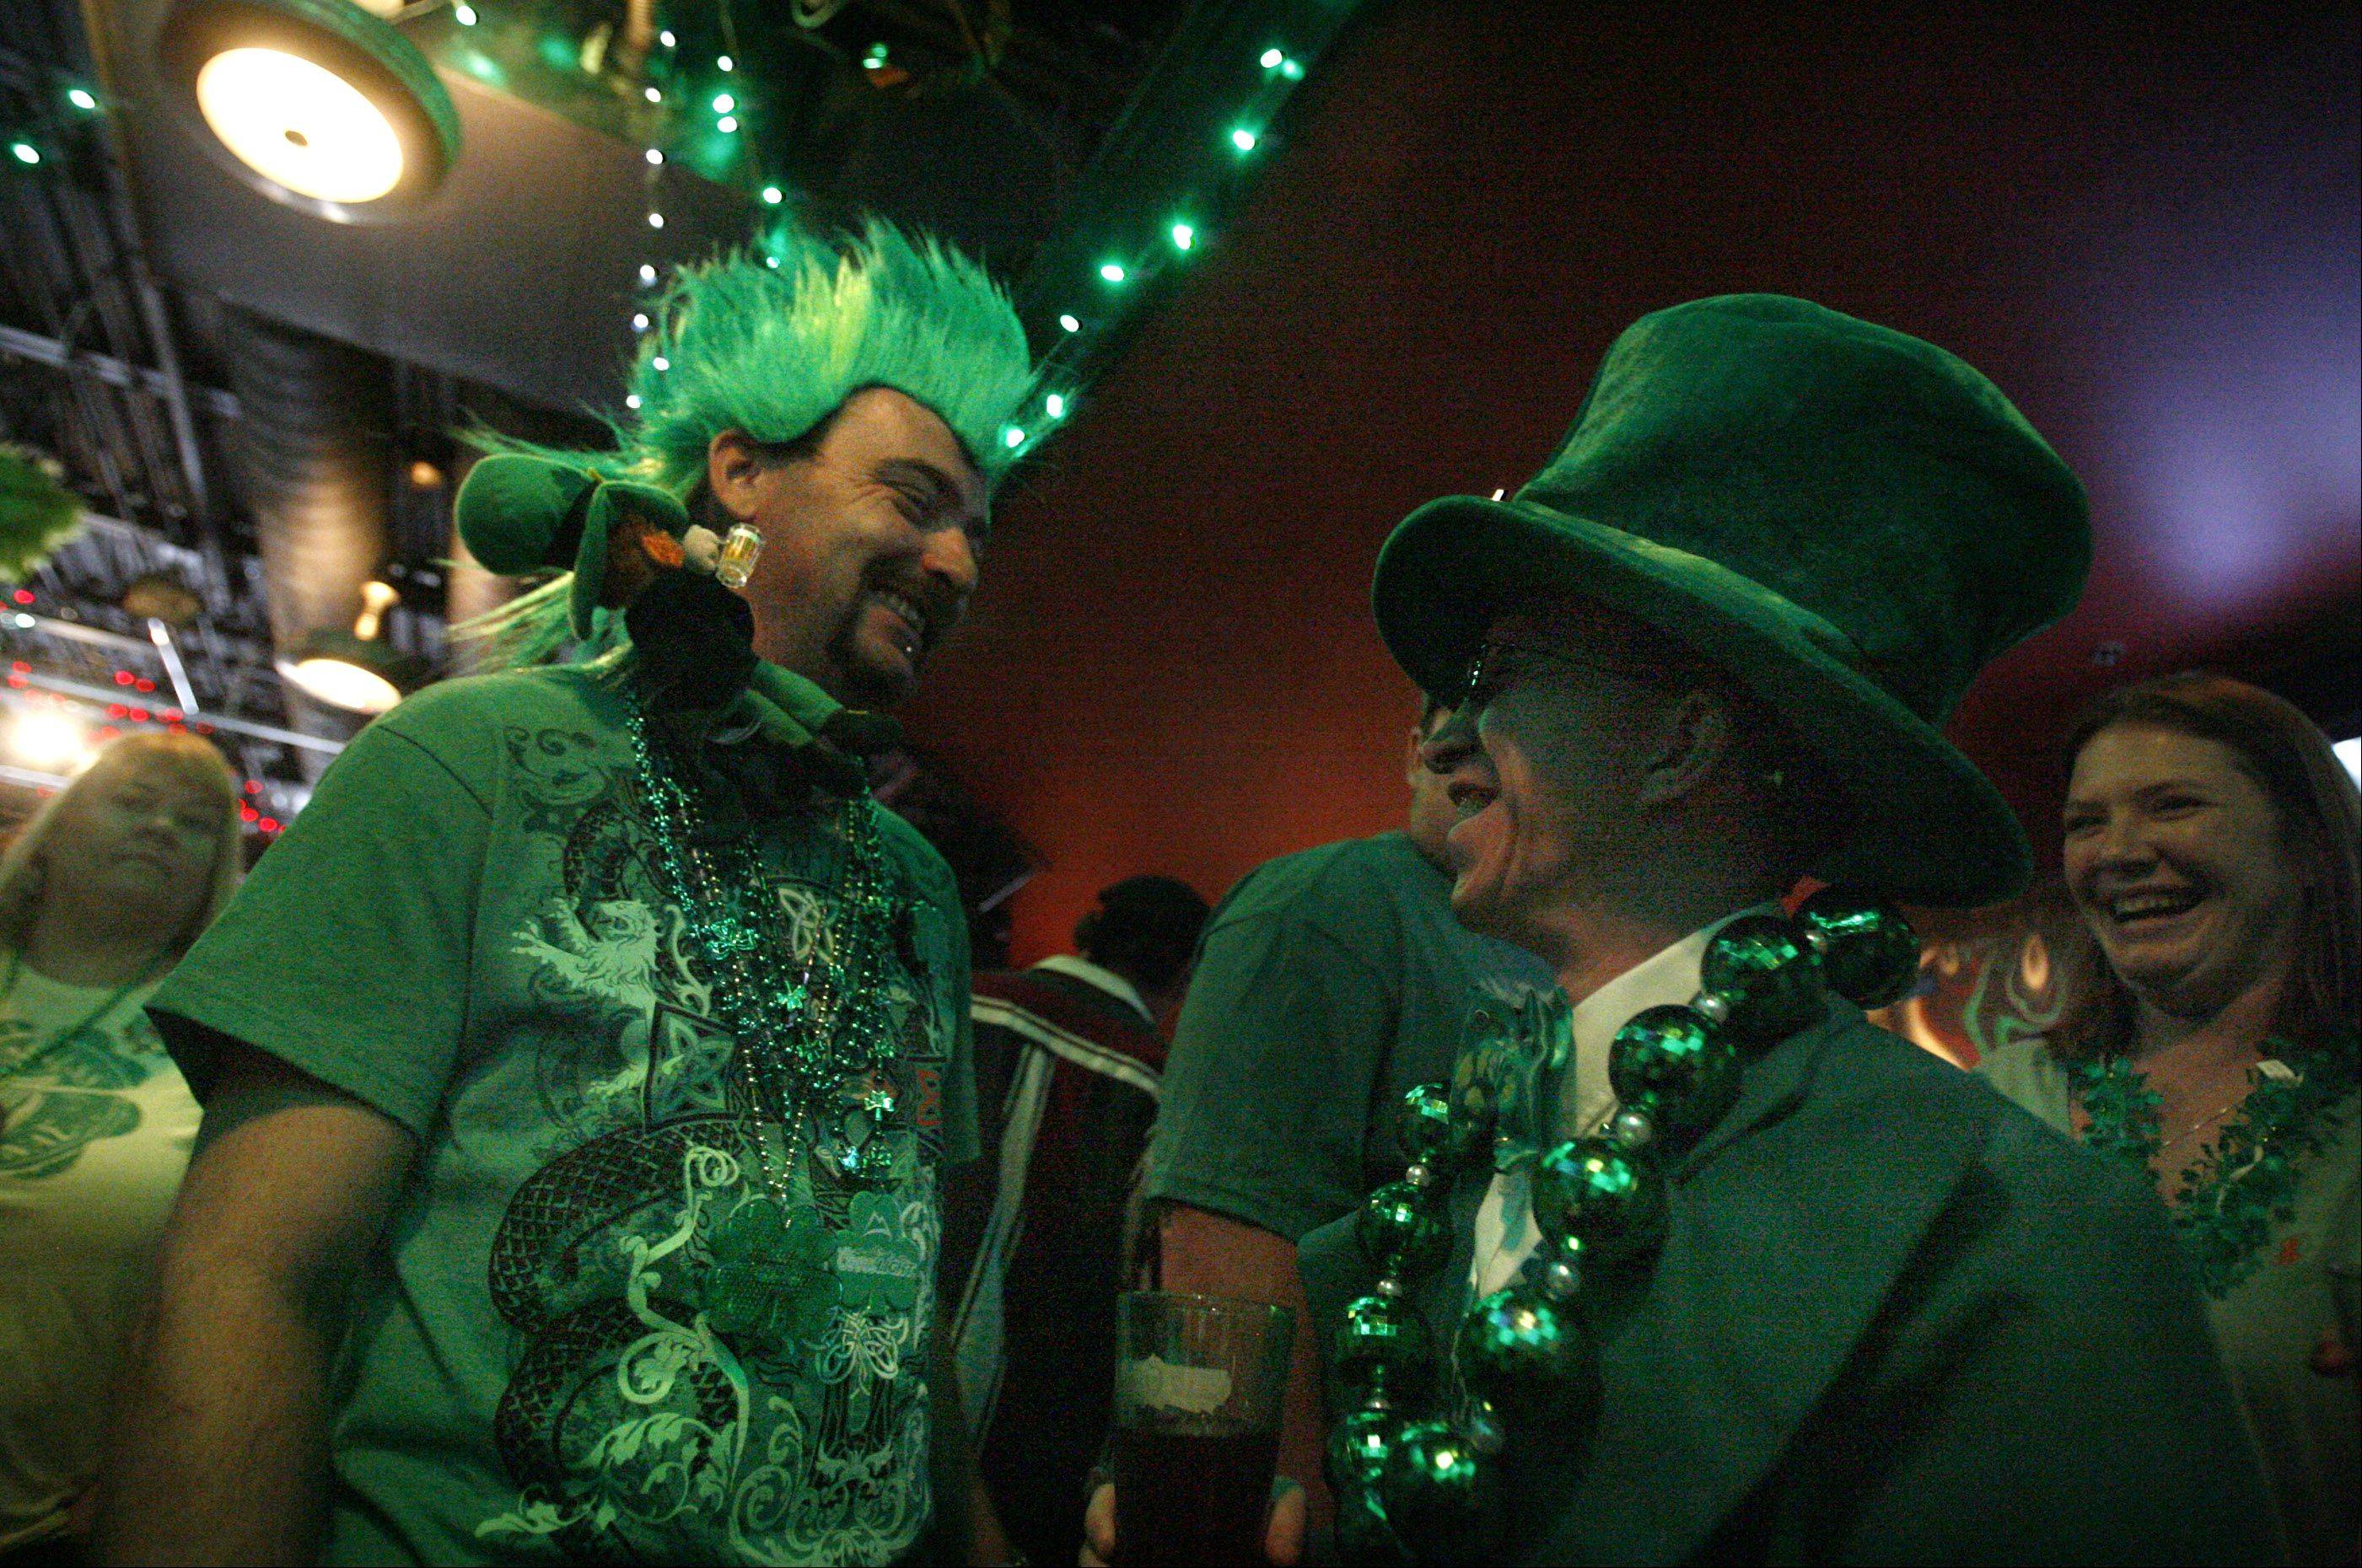 James Whitaker of Libertyville, left, and Pierce Coleman of Antioch have a laugh while waiting for a late start to the St. Patrick's day St. Baldrick's event at Mickey Finn's in Libertyville on Saturday, March 17th.